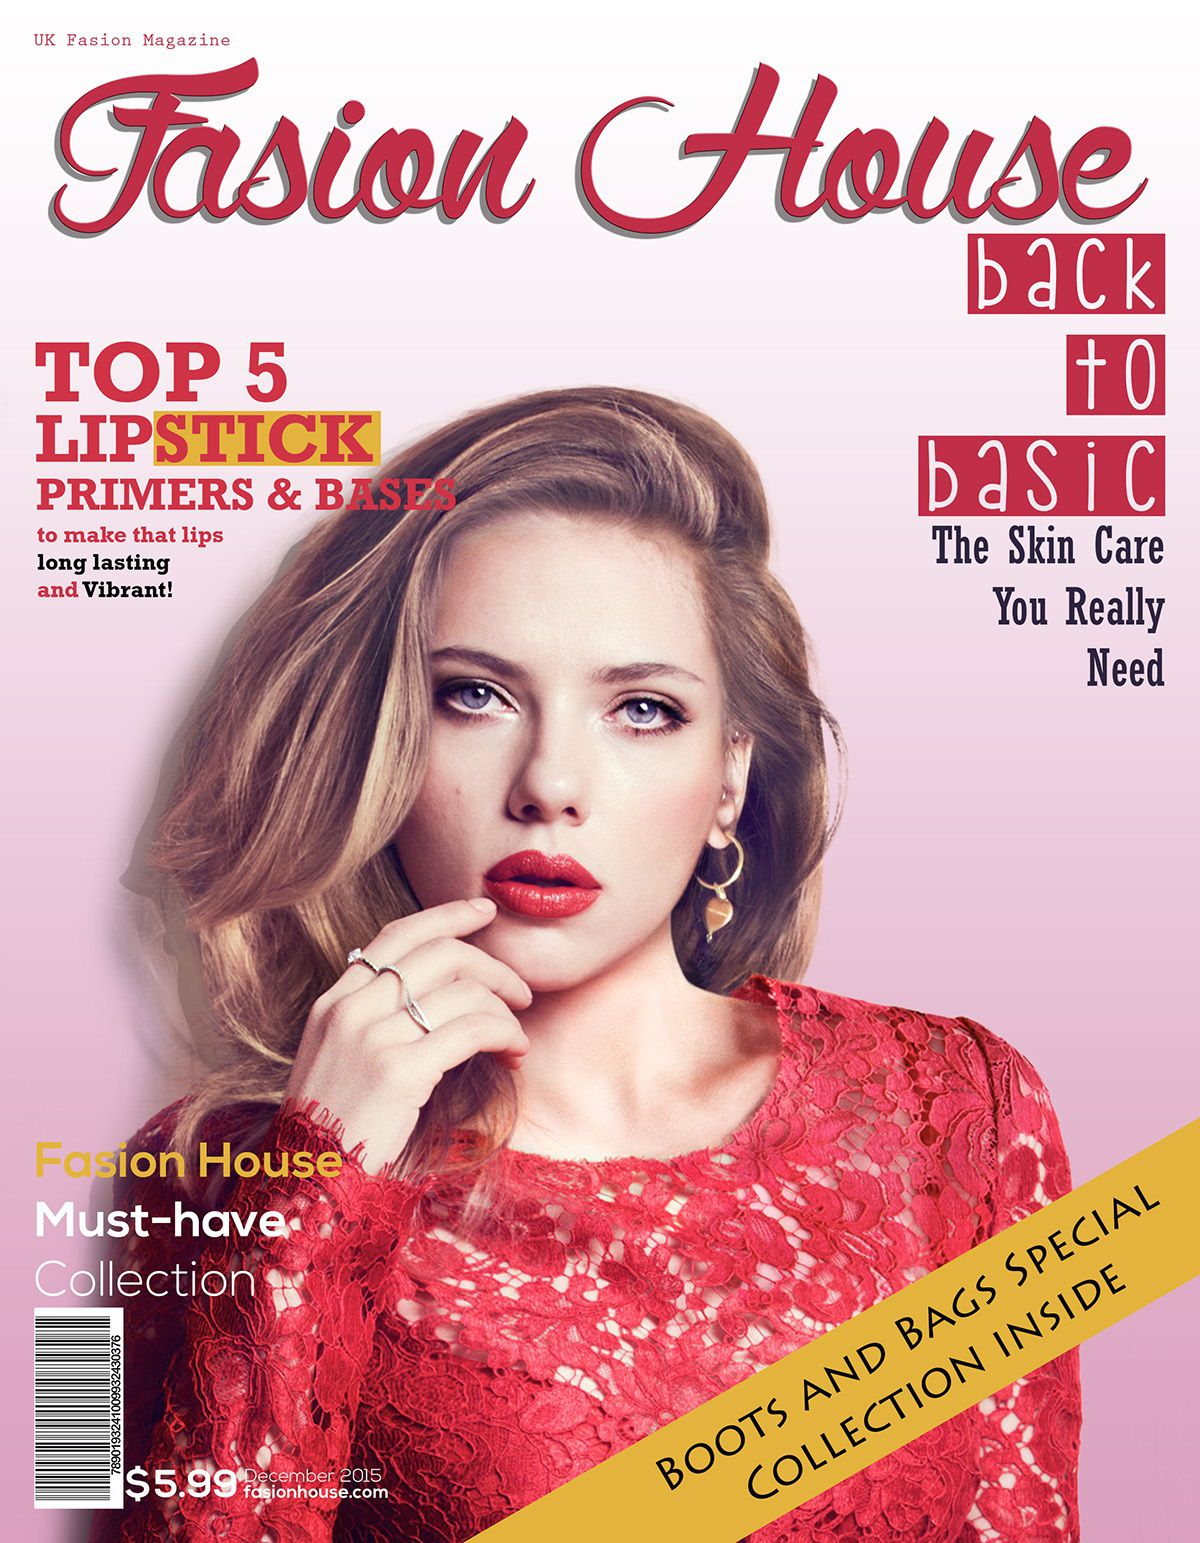 002 Outstanding Photoshop Fashion Magazine Cover Template Free Design Full